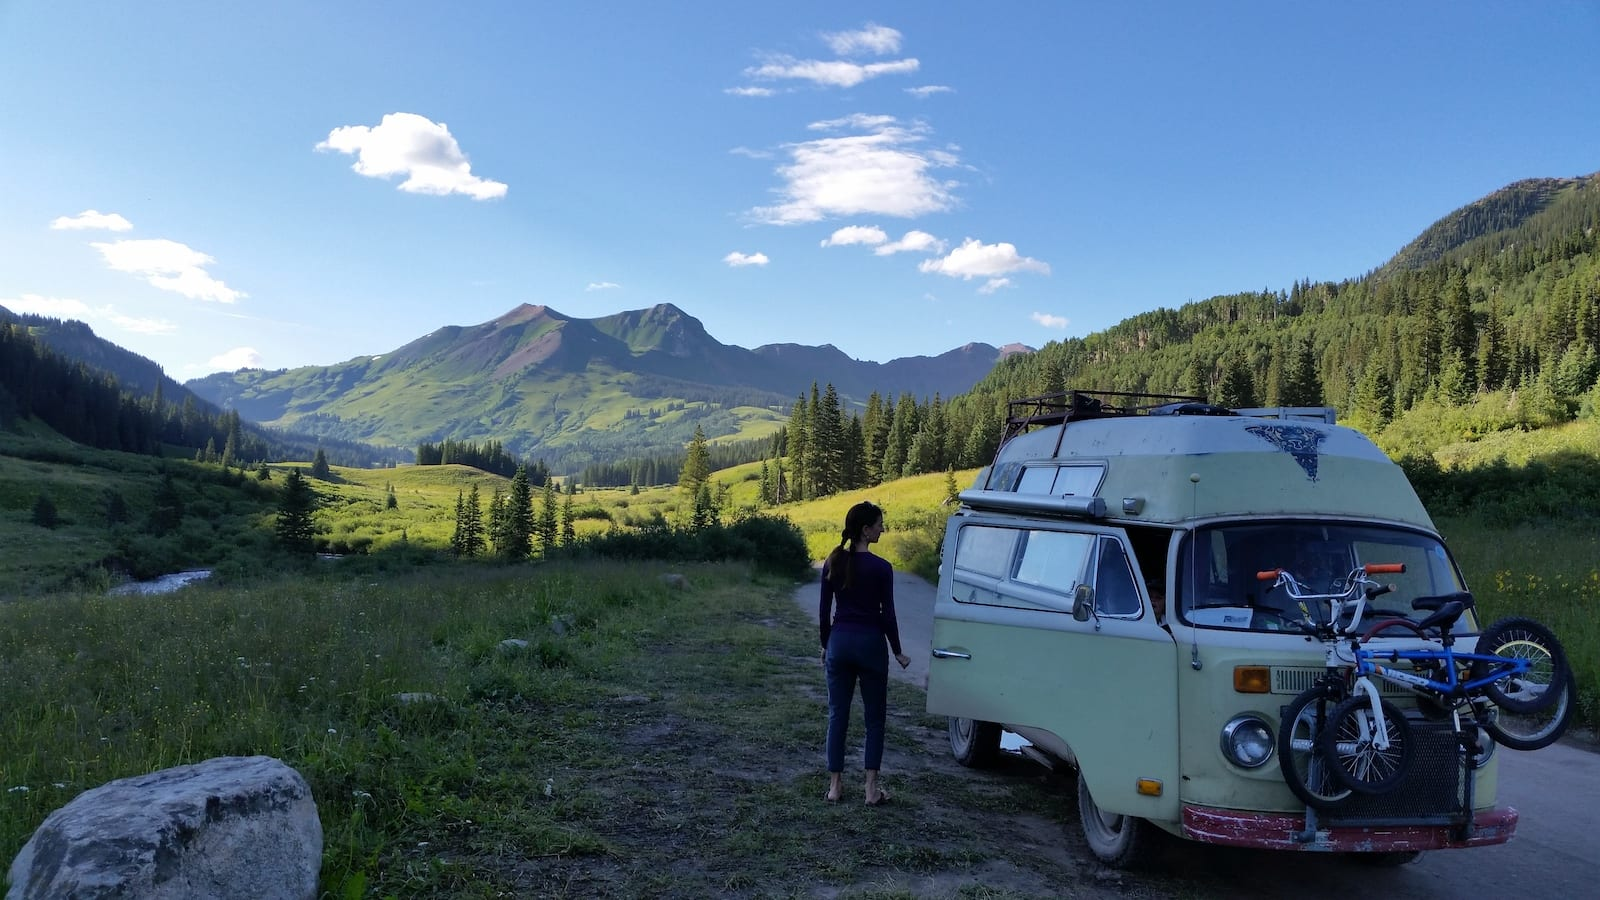 Overlooking Schofield Pass near Crested Butte, CO